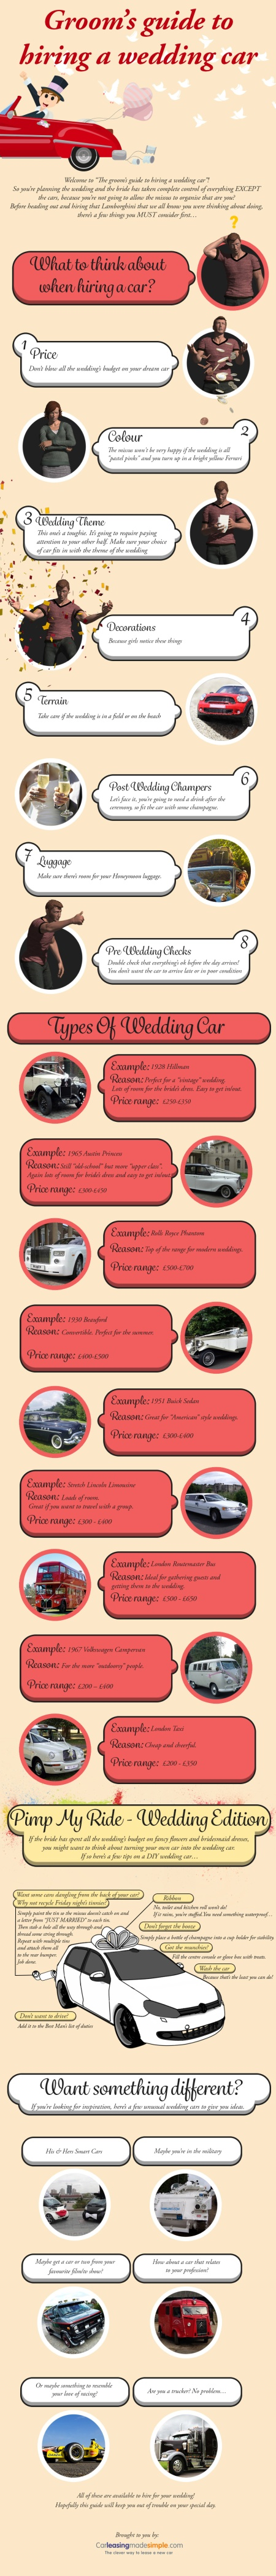 grooms-guide-to-hiring-a-wedding-car